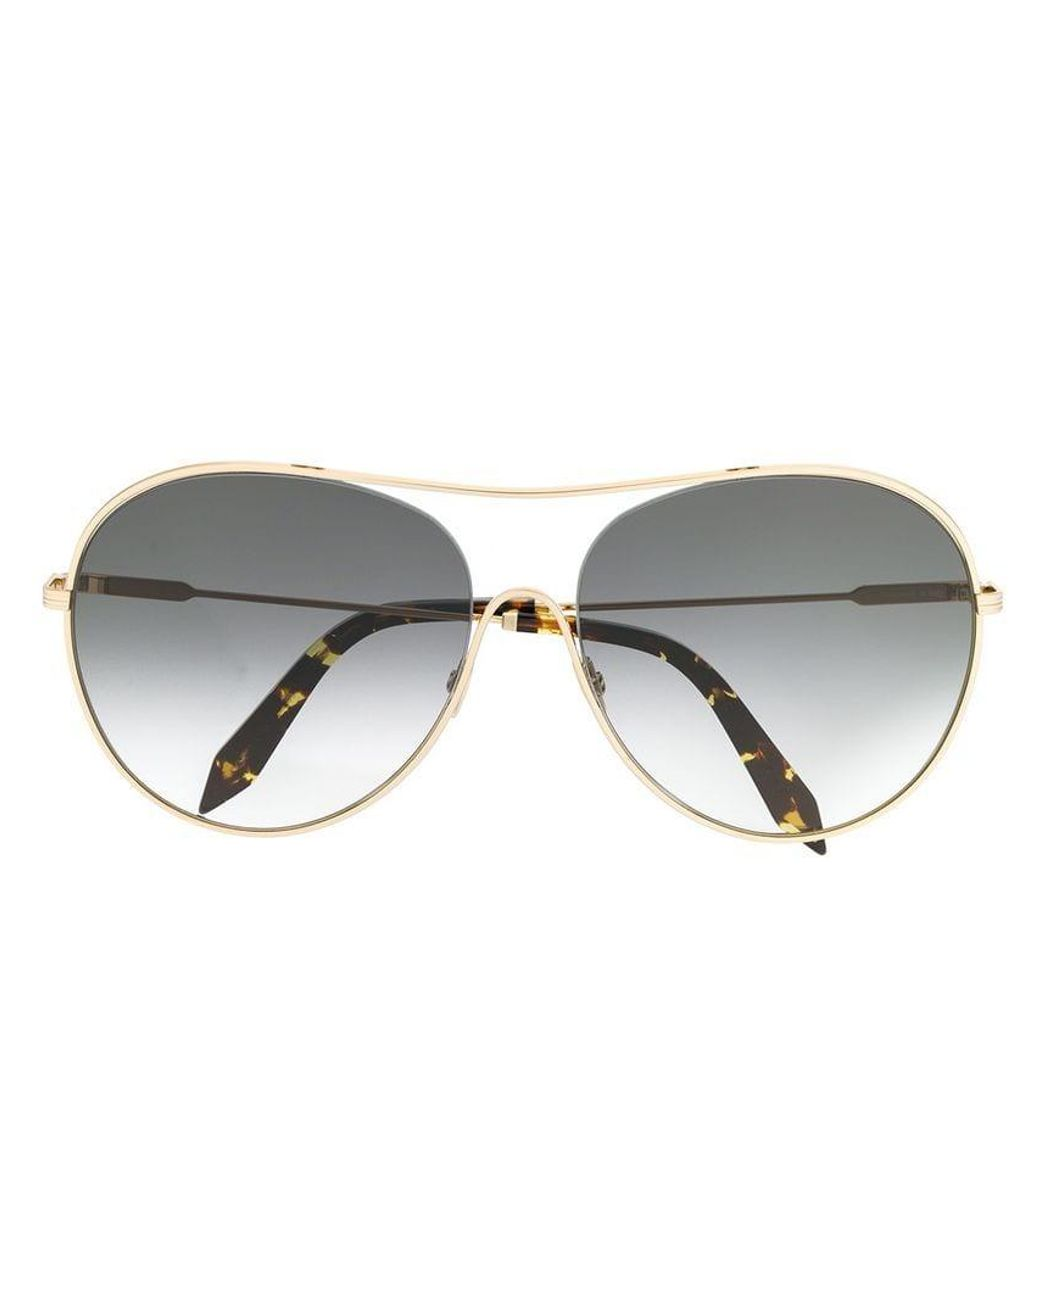 b39fde37a50b Lyst - Victoria Beckham Round Shaped Sunglasses in Metallic